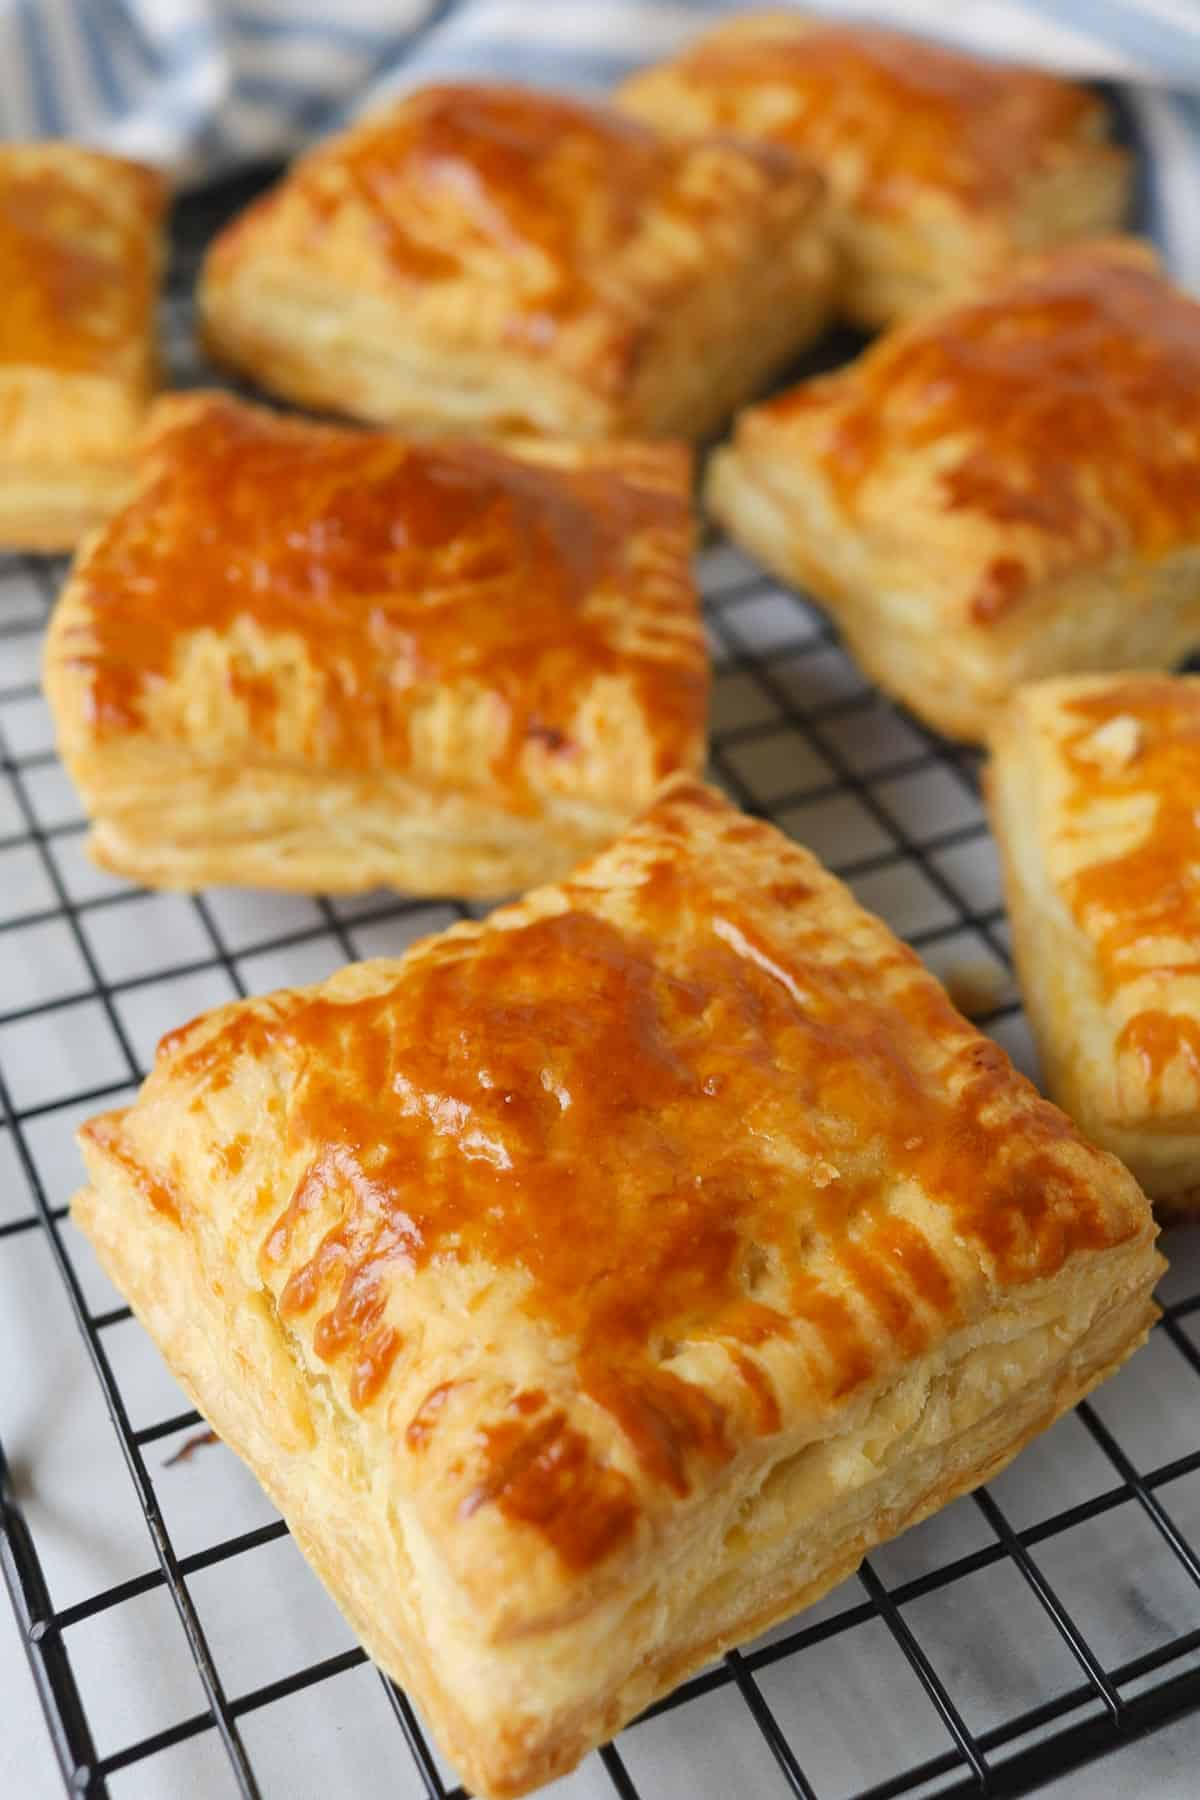 Golden square puff pastries on a cooling rack.